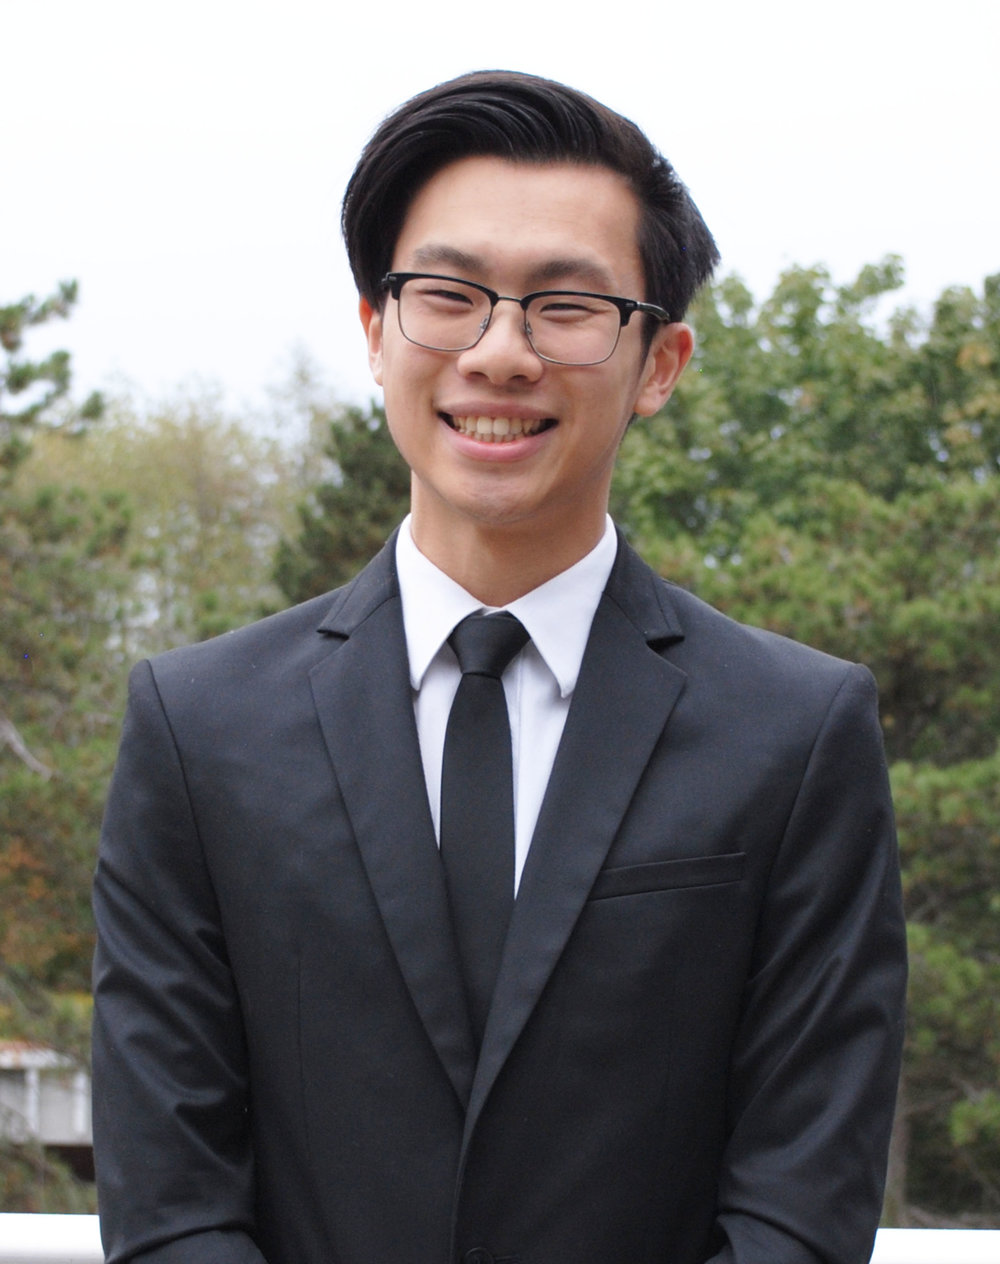 Brenton Lo Position: Corporate Relations Coordinator Year: 3 Concentration: Finance or Marketing One Emoji that describes you and why: ☕️ This coffee emoji describes me the most because I would not be able to get through any sort of day without at least one or two cups. You would almost always catch me with a coffee in hand. What are you excited to do you in your term? I'm excited to become more engaged with the Beedie and SFU community through the BASS programs, but also to improve my own communication skills and make impactful connections with industry professionals.